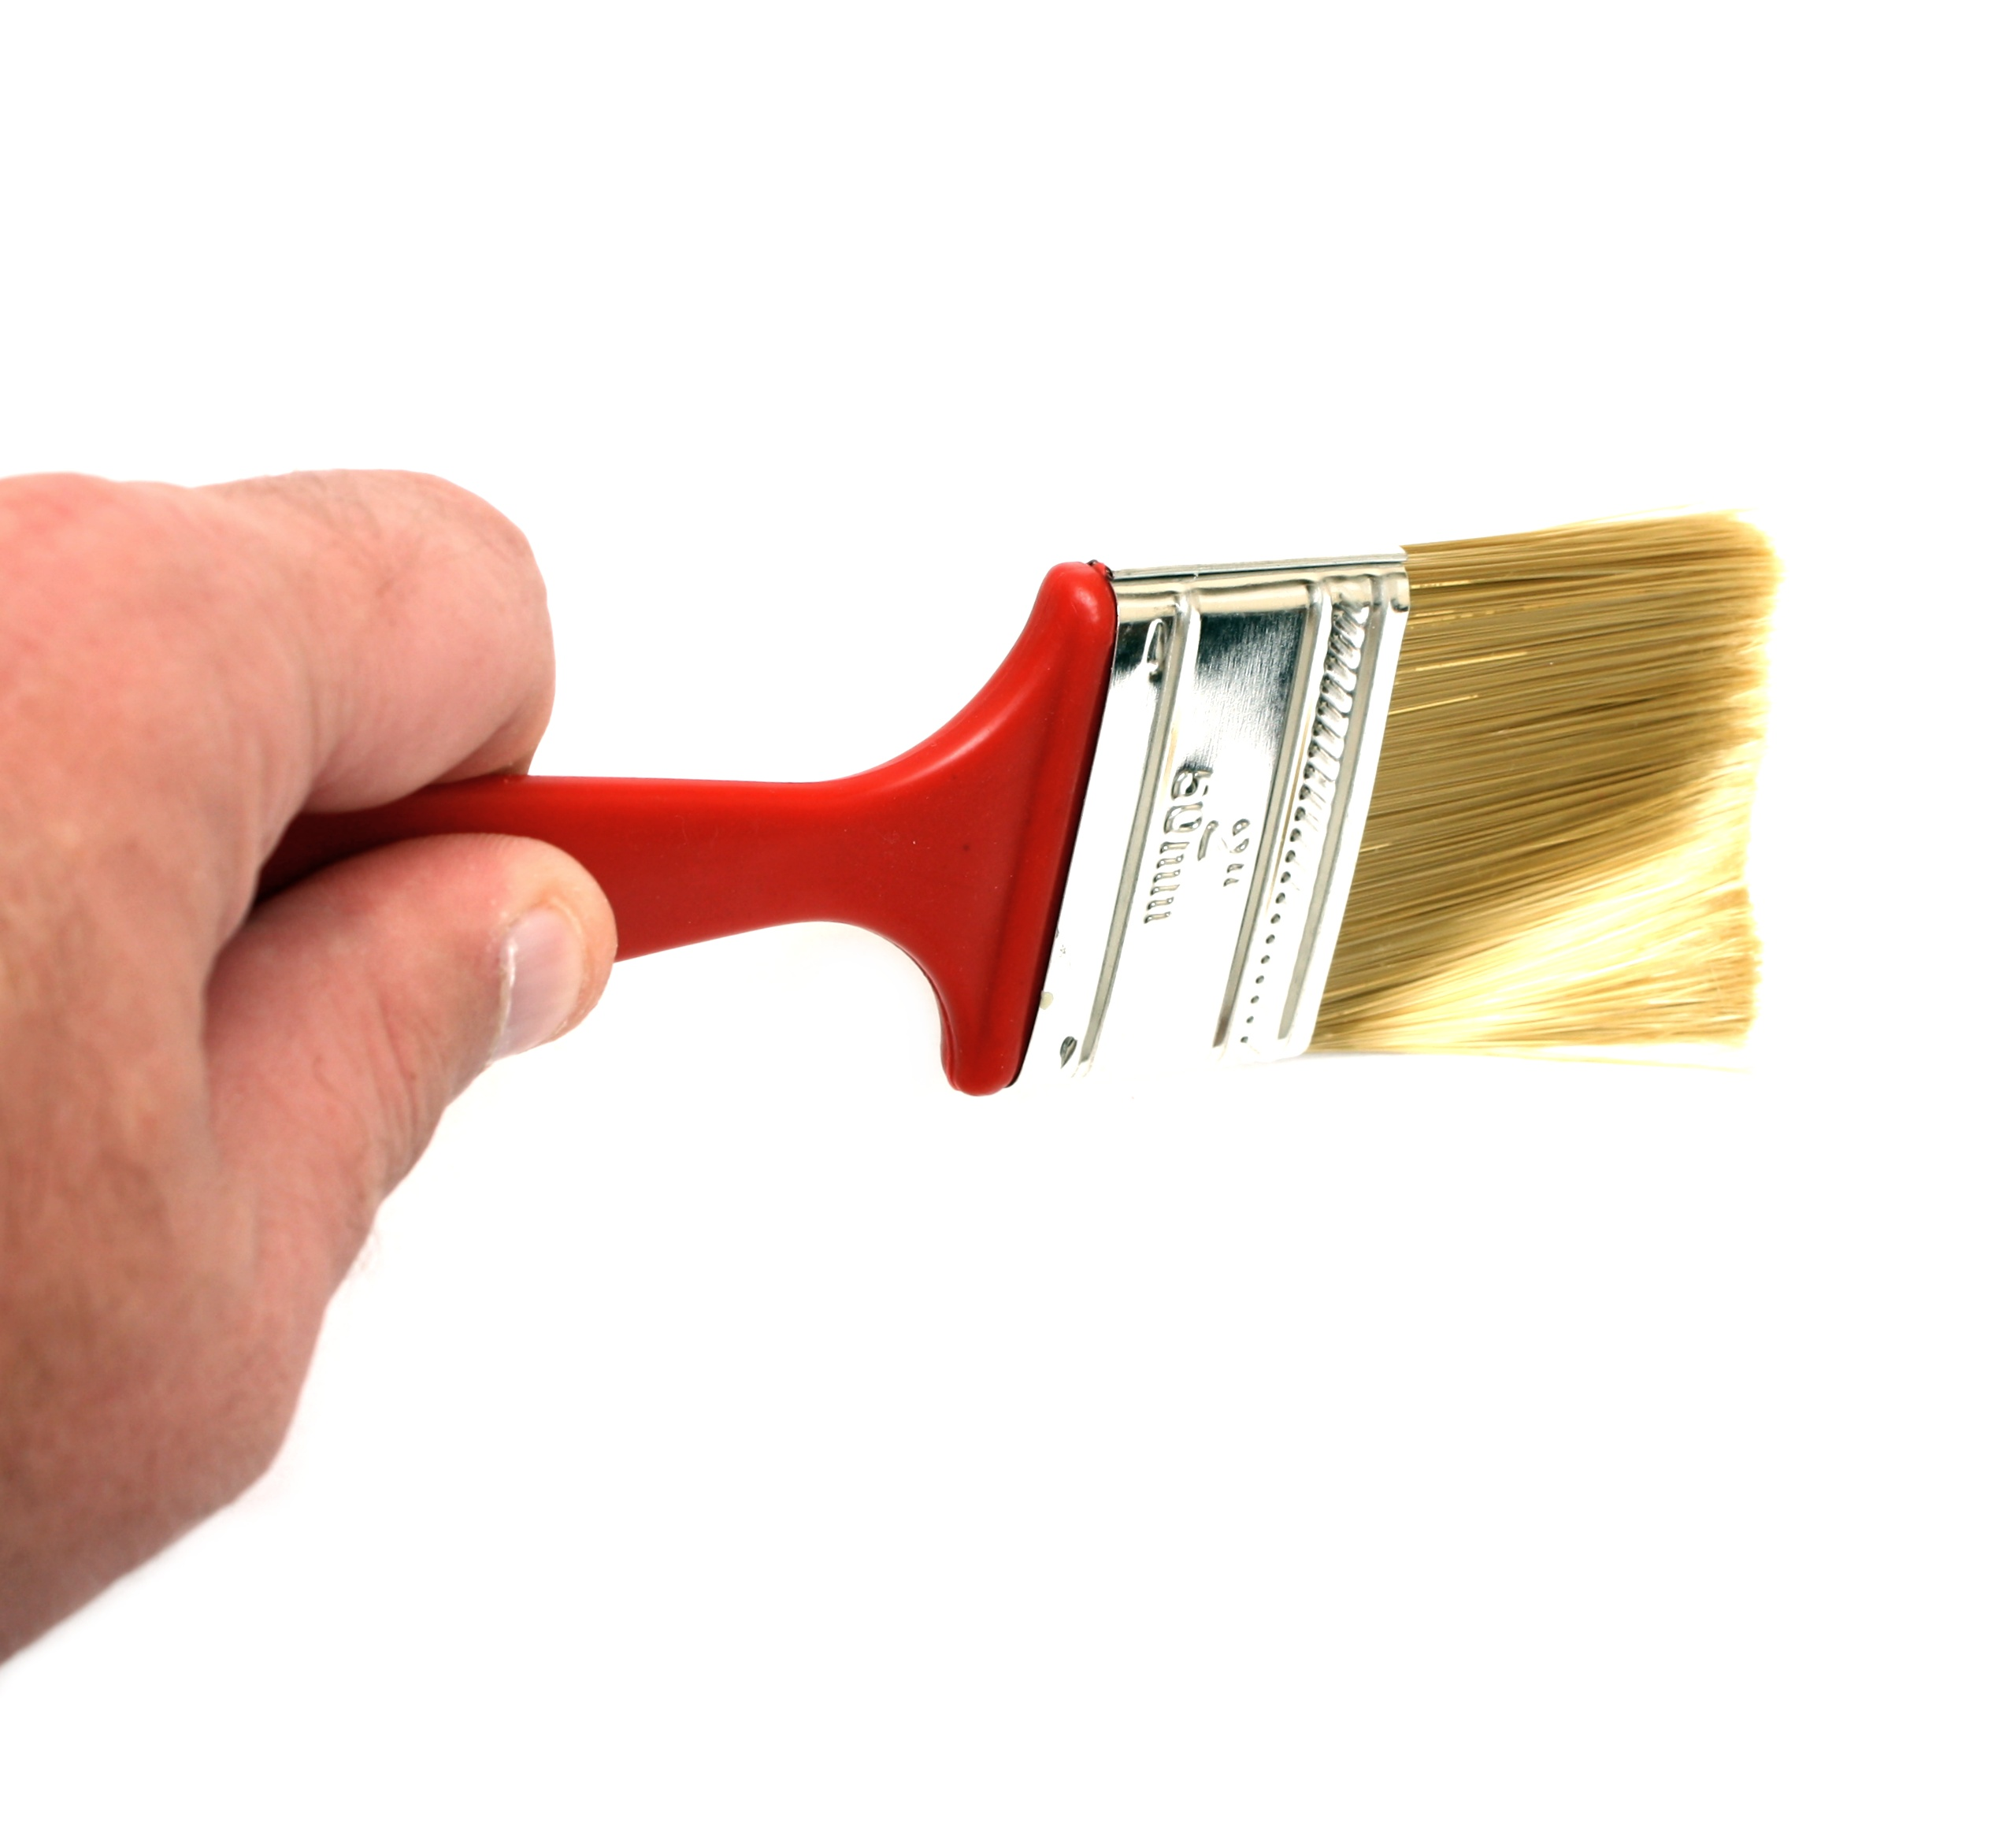 A hand holding a paint brush, Paintbrush, Painting, Recreation, Tools, HQ Photo